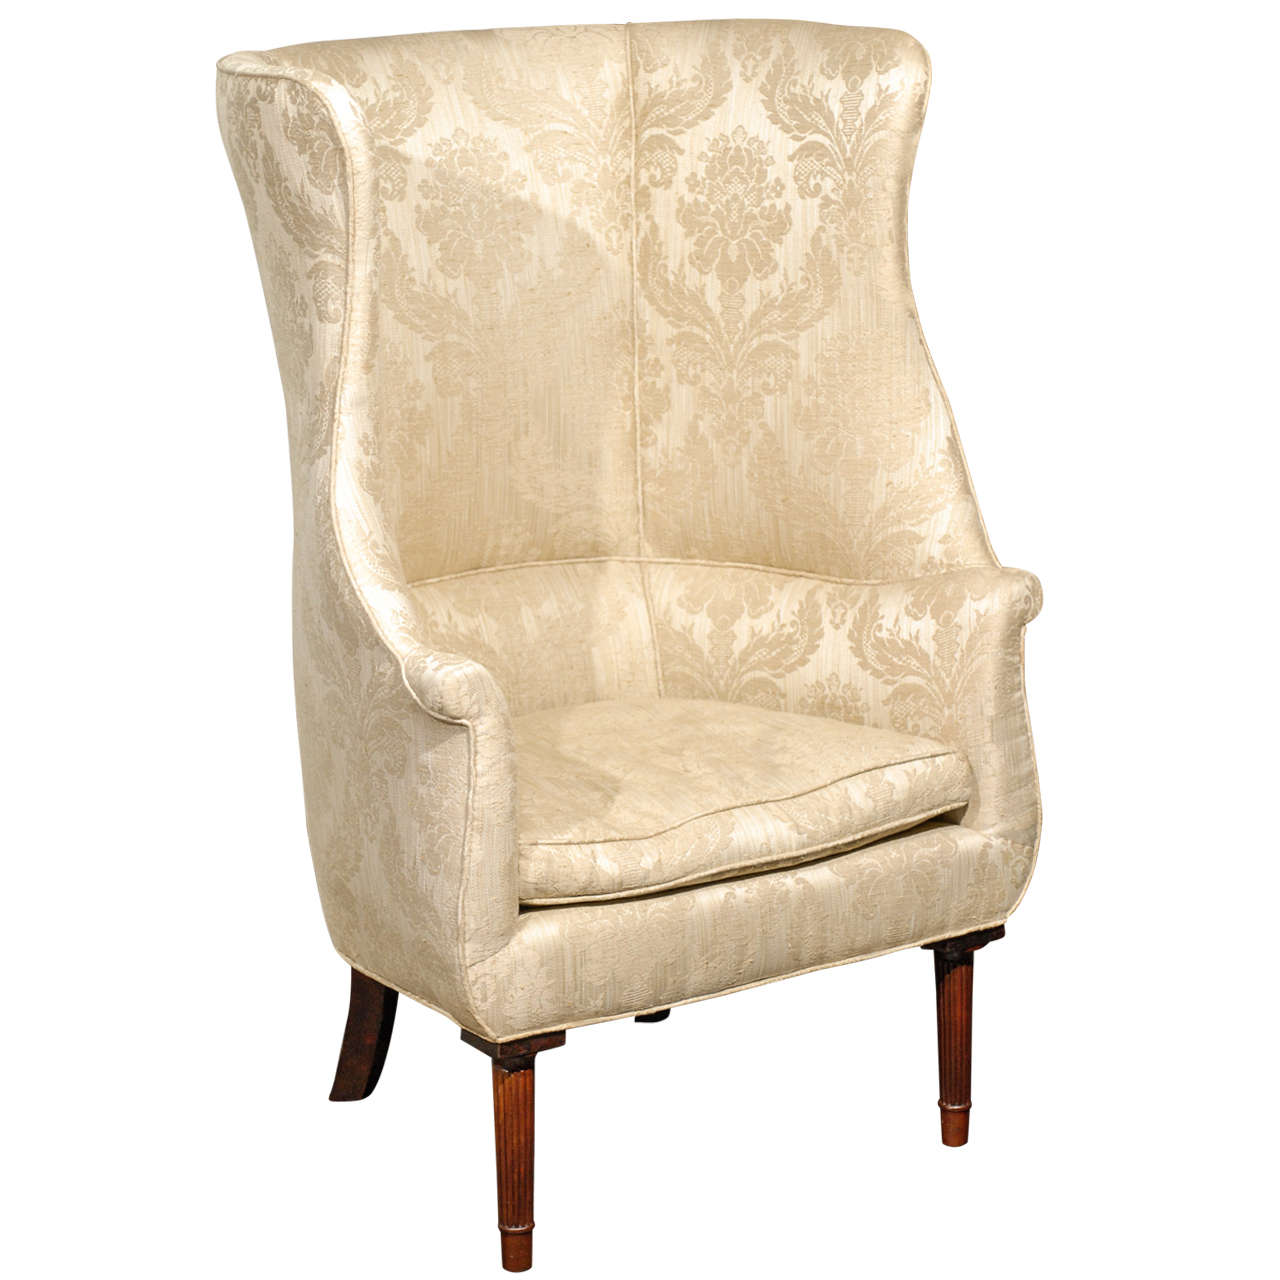 Barrel Back Wing Chair For Sale at 1stdibs